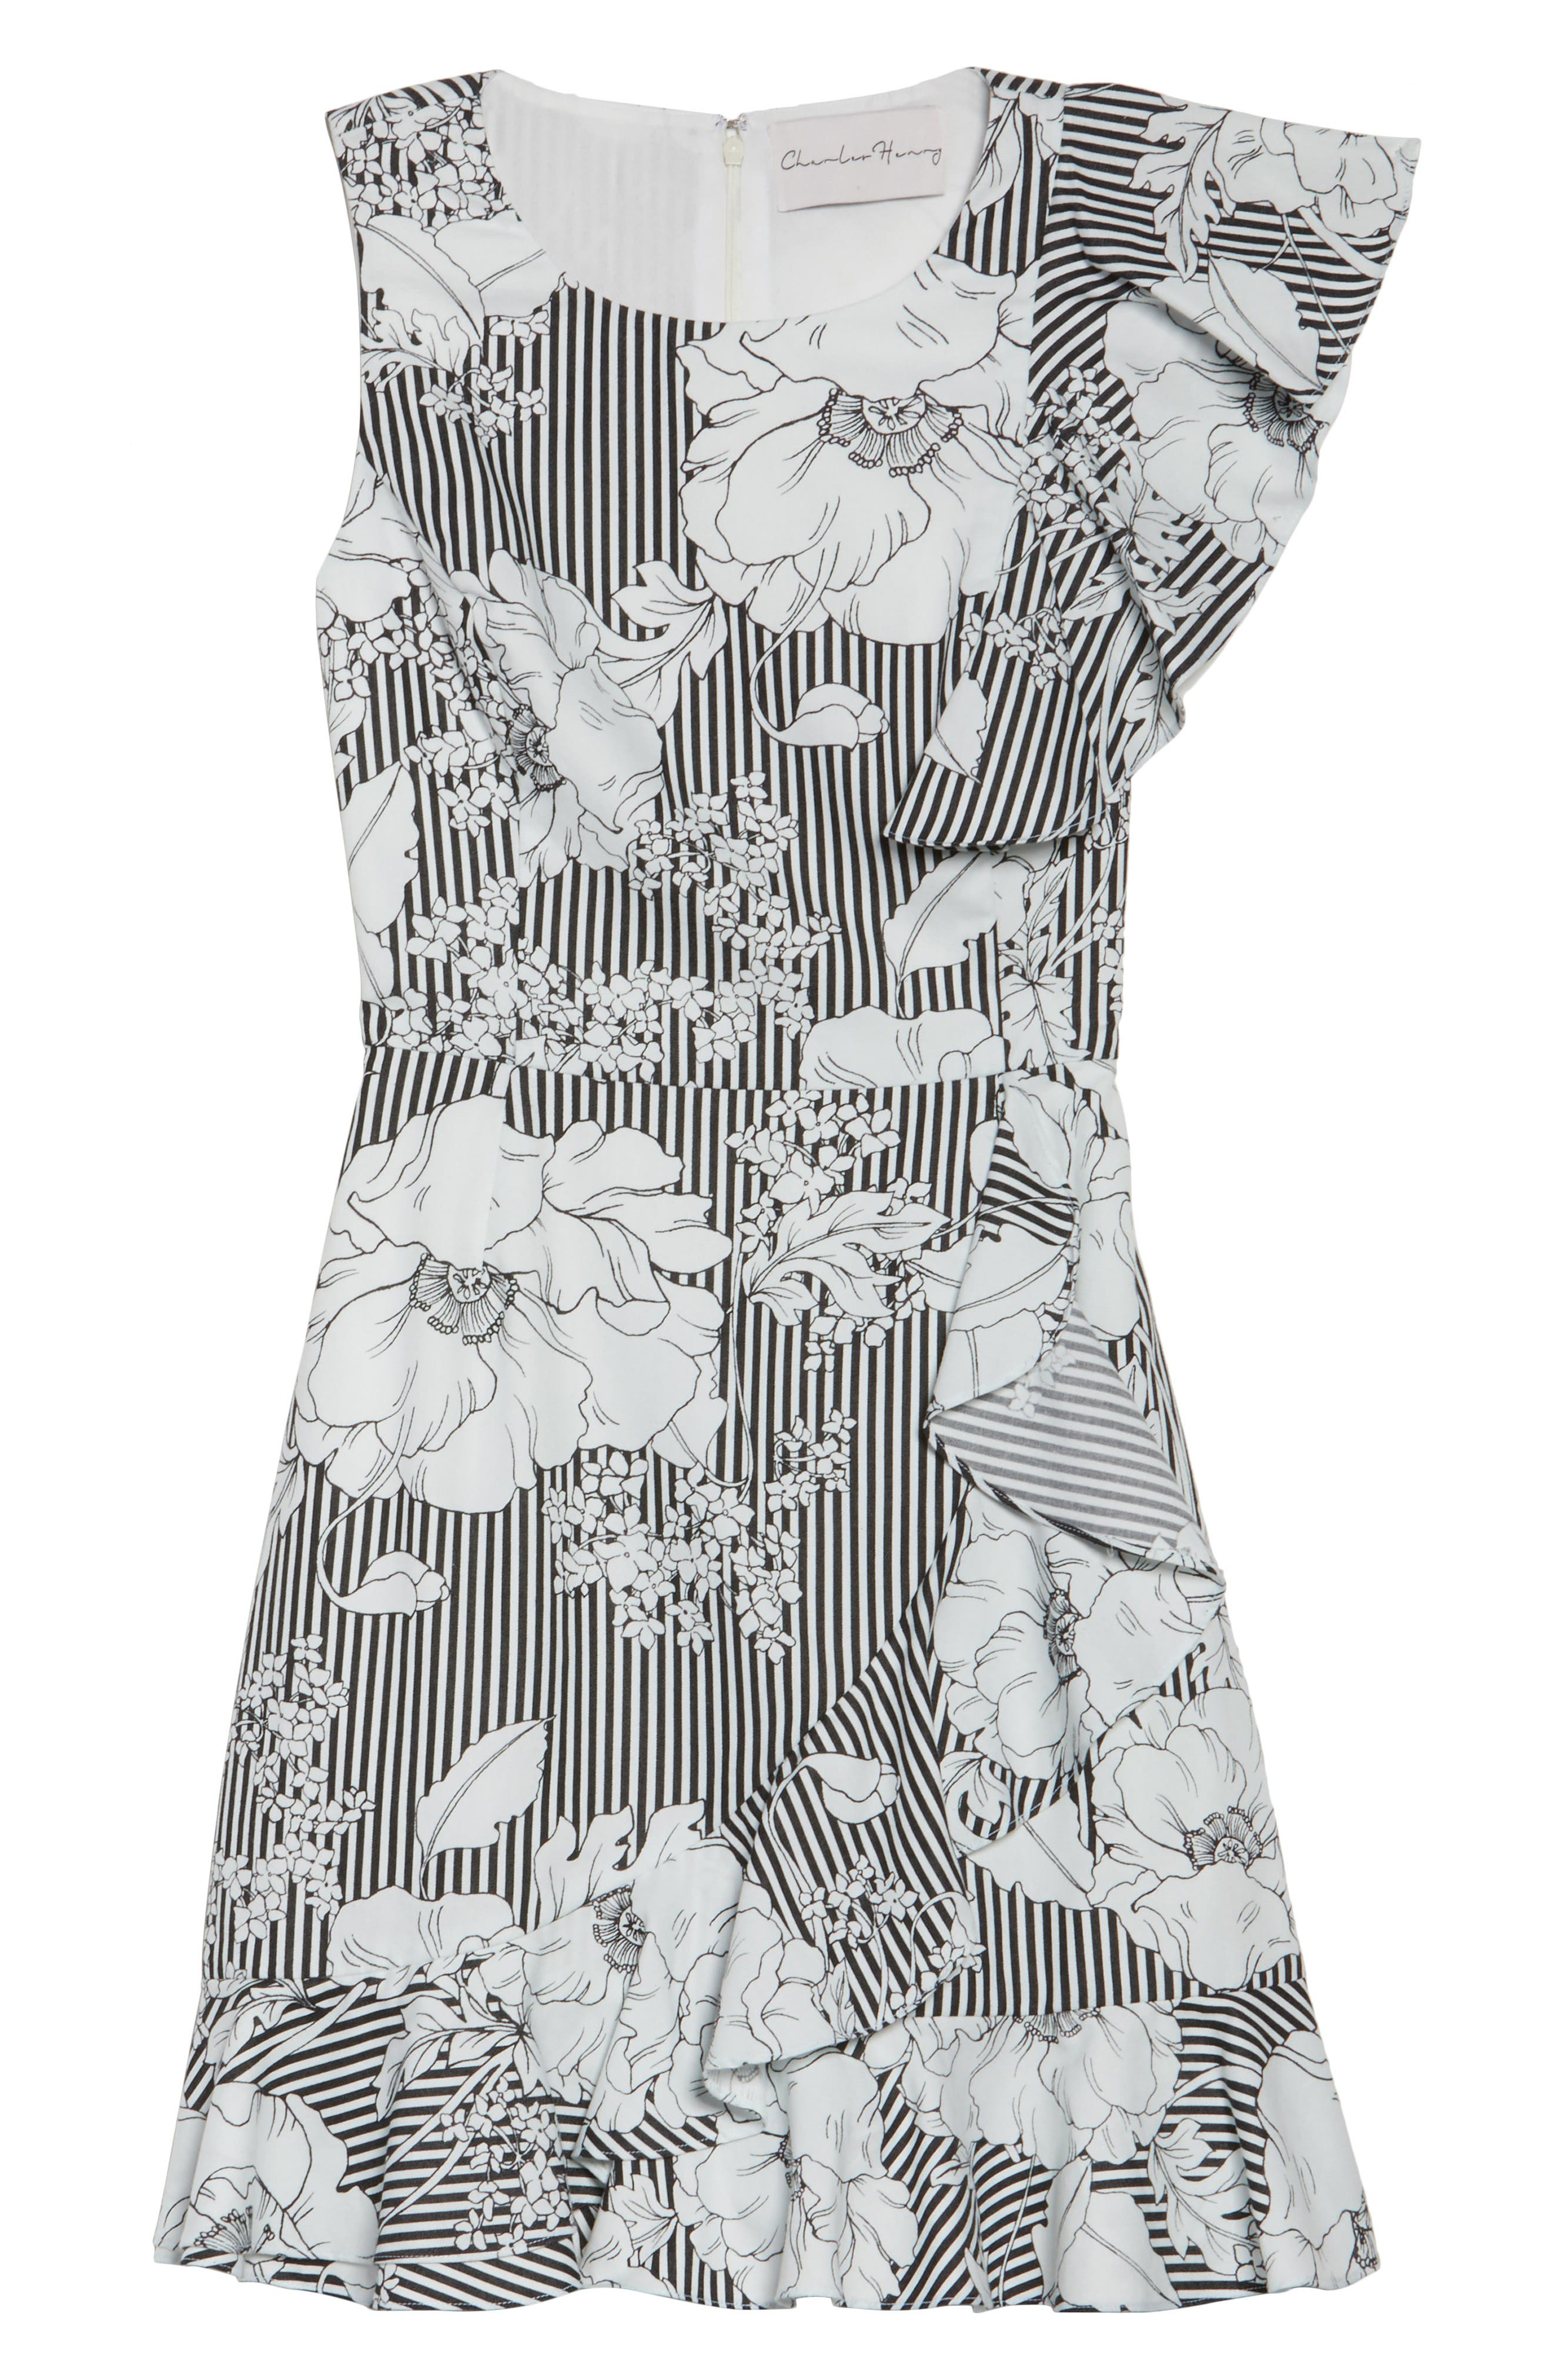 Floral Asymmetrical Ruffle Dress,                             Alternate thumbnail 6, color,                             018